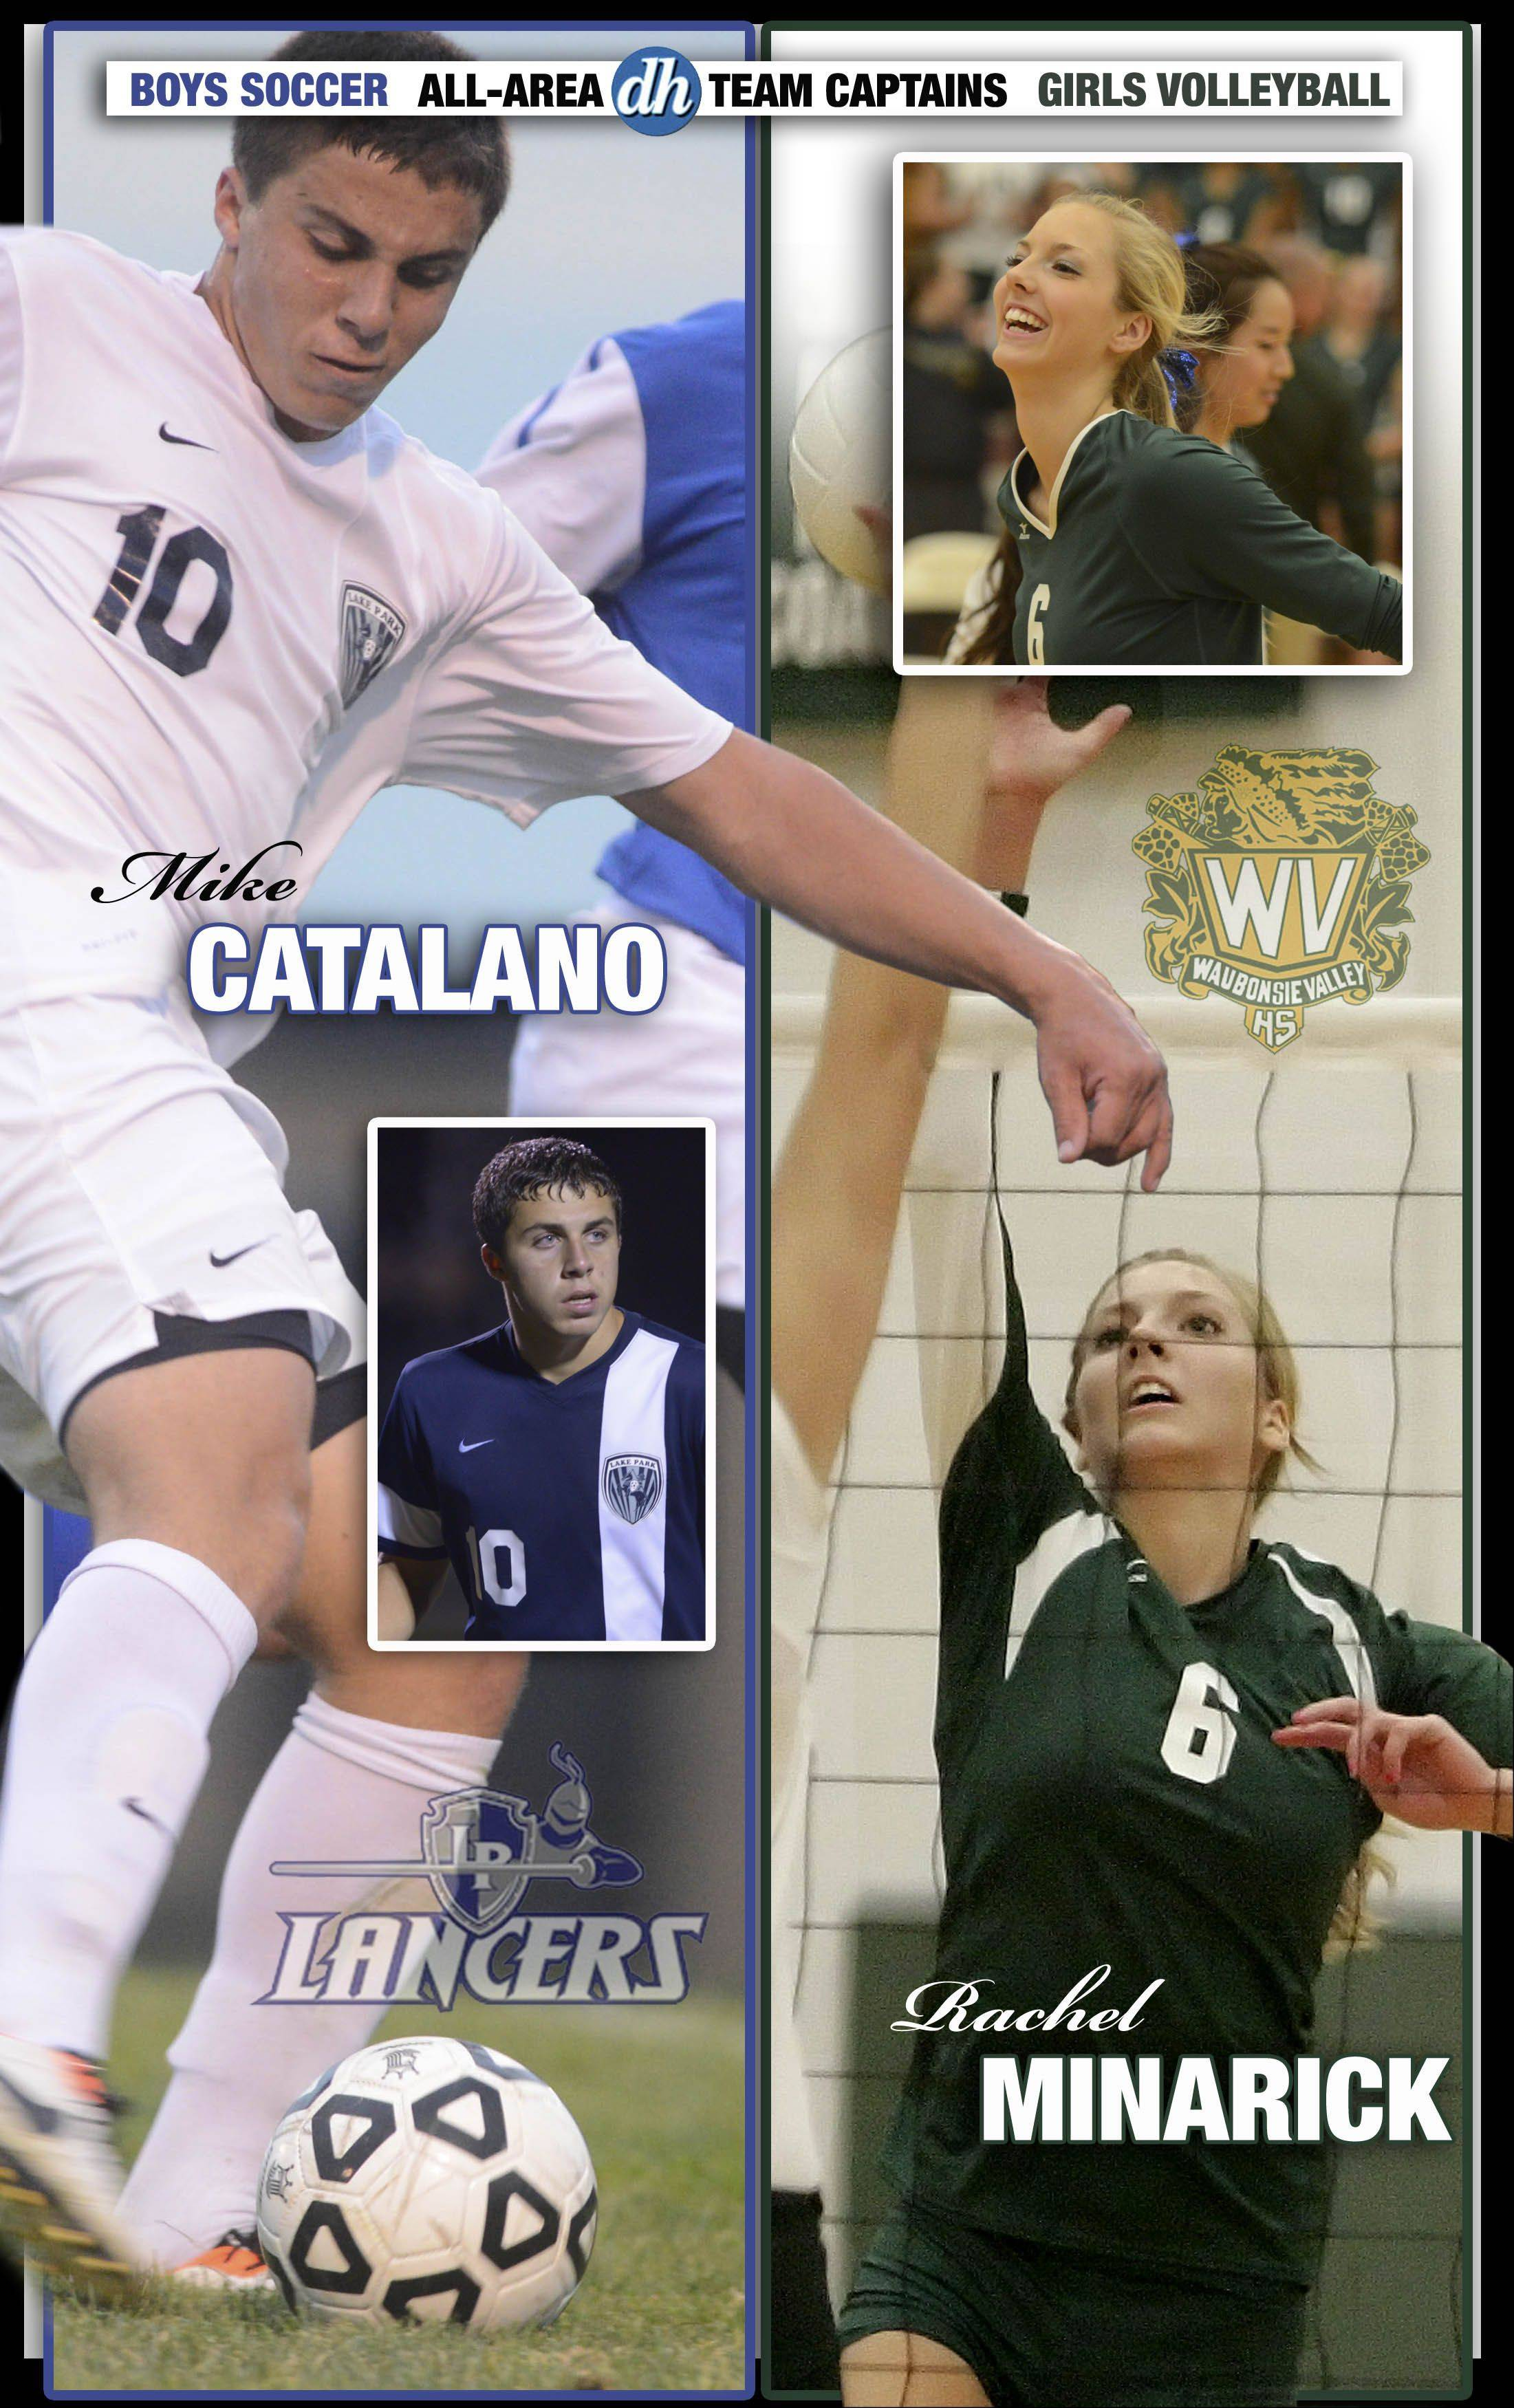 Boys soccer and Girls volleyball All-Area Team Captains in DuPage County are Mike Catalano of Lake Park and Rachel Minarick of Waubonsie Valley.